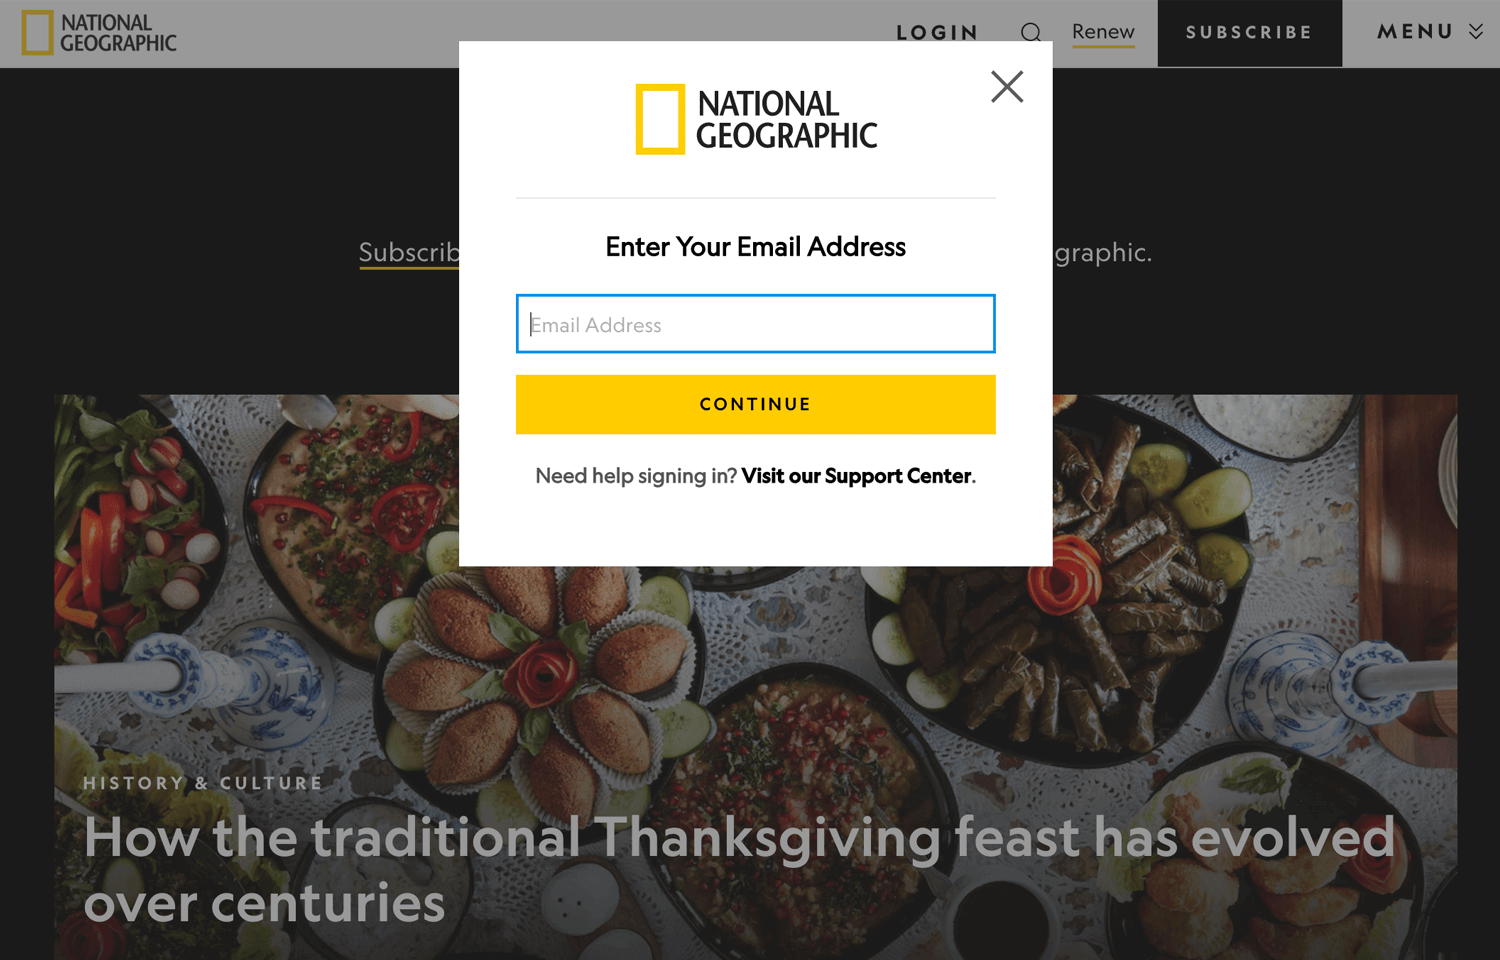 national geographic simple login form